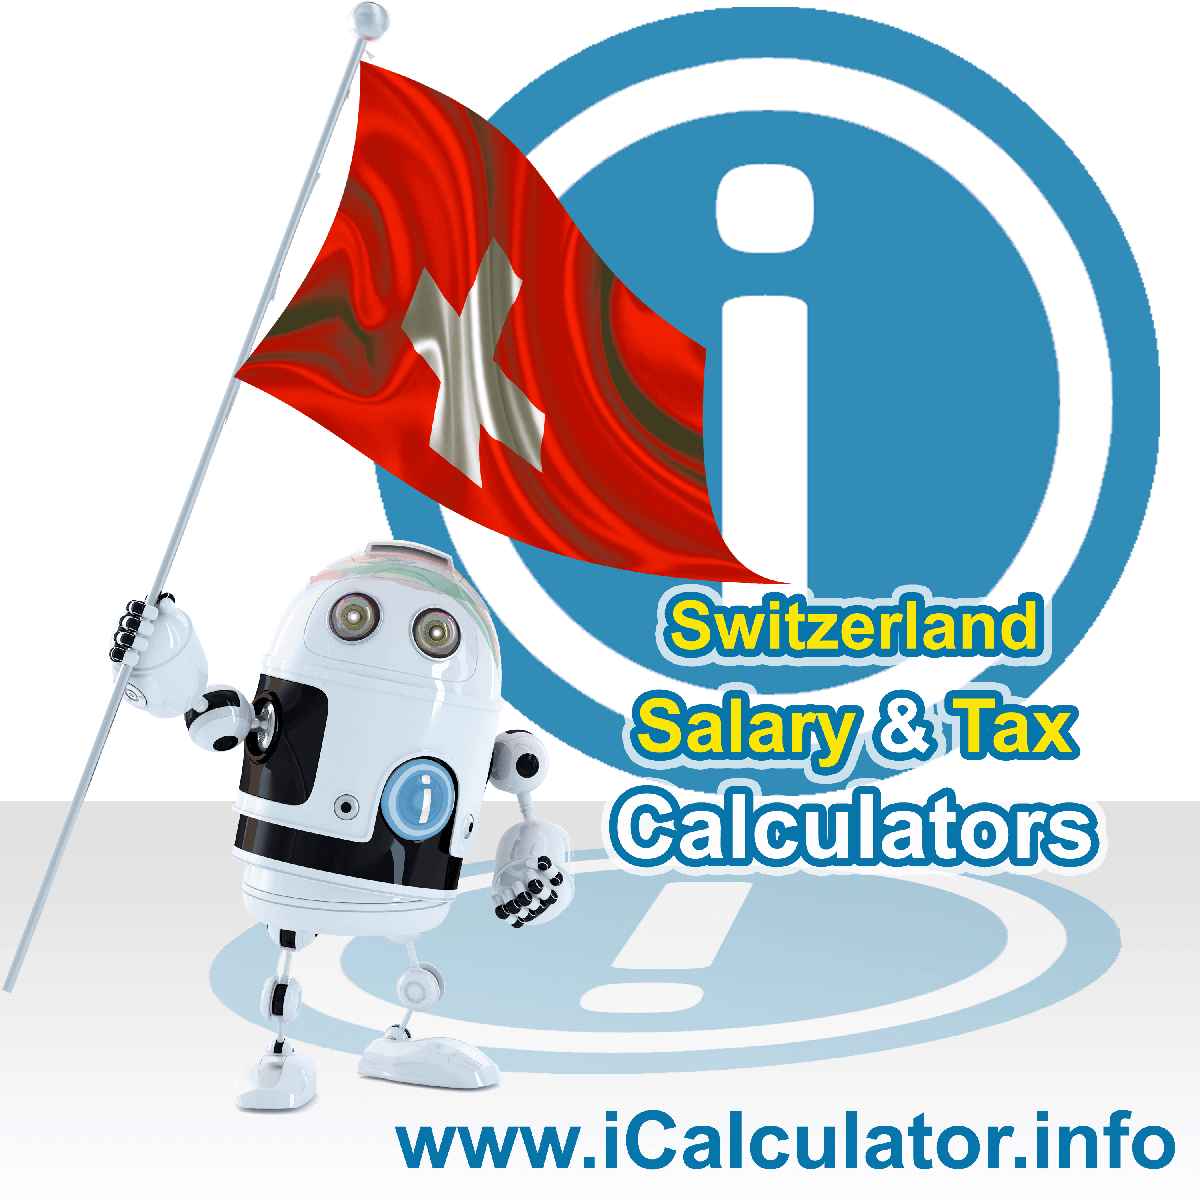 Switzerland Tax Calculator. This image shows the Switzerland flag and information relating to the tax formula for the Switzerland Salary Calculator